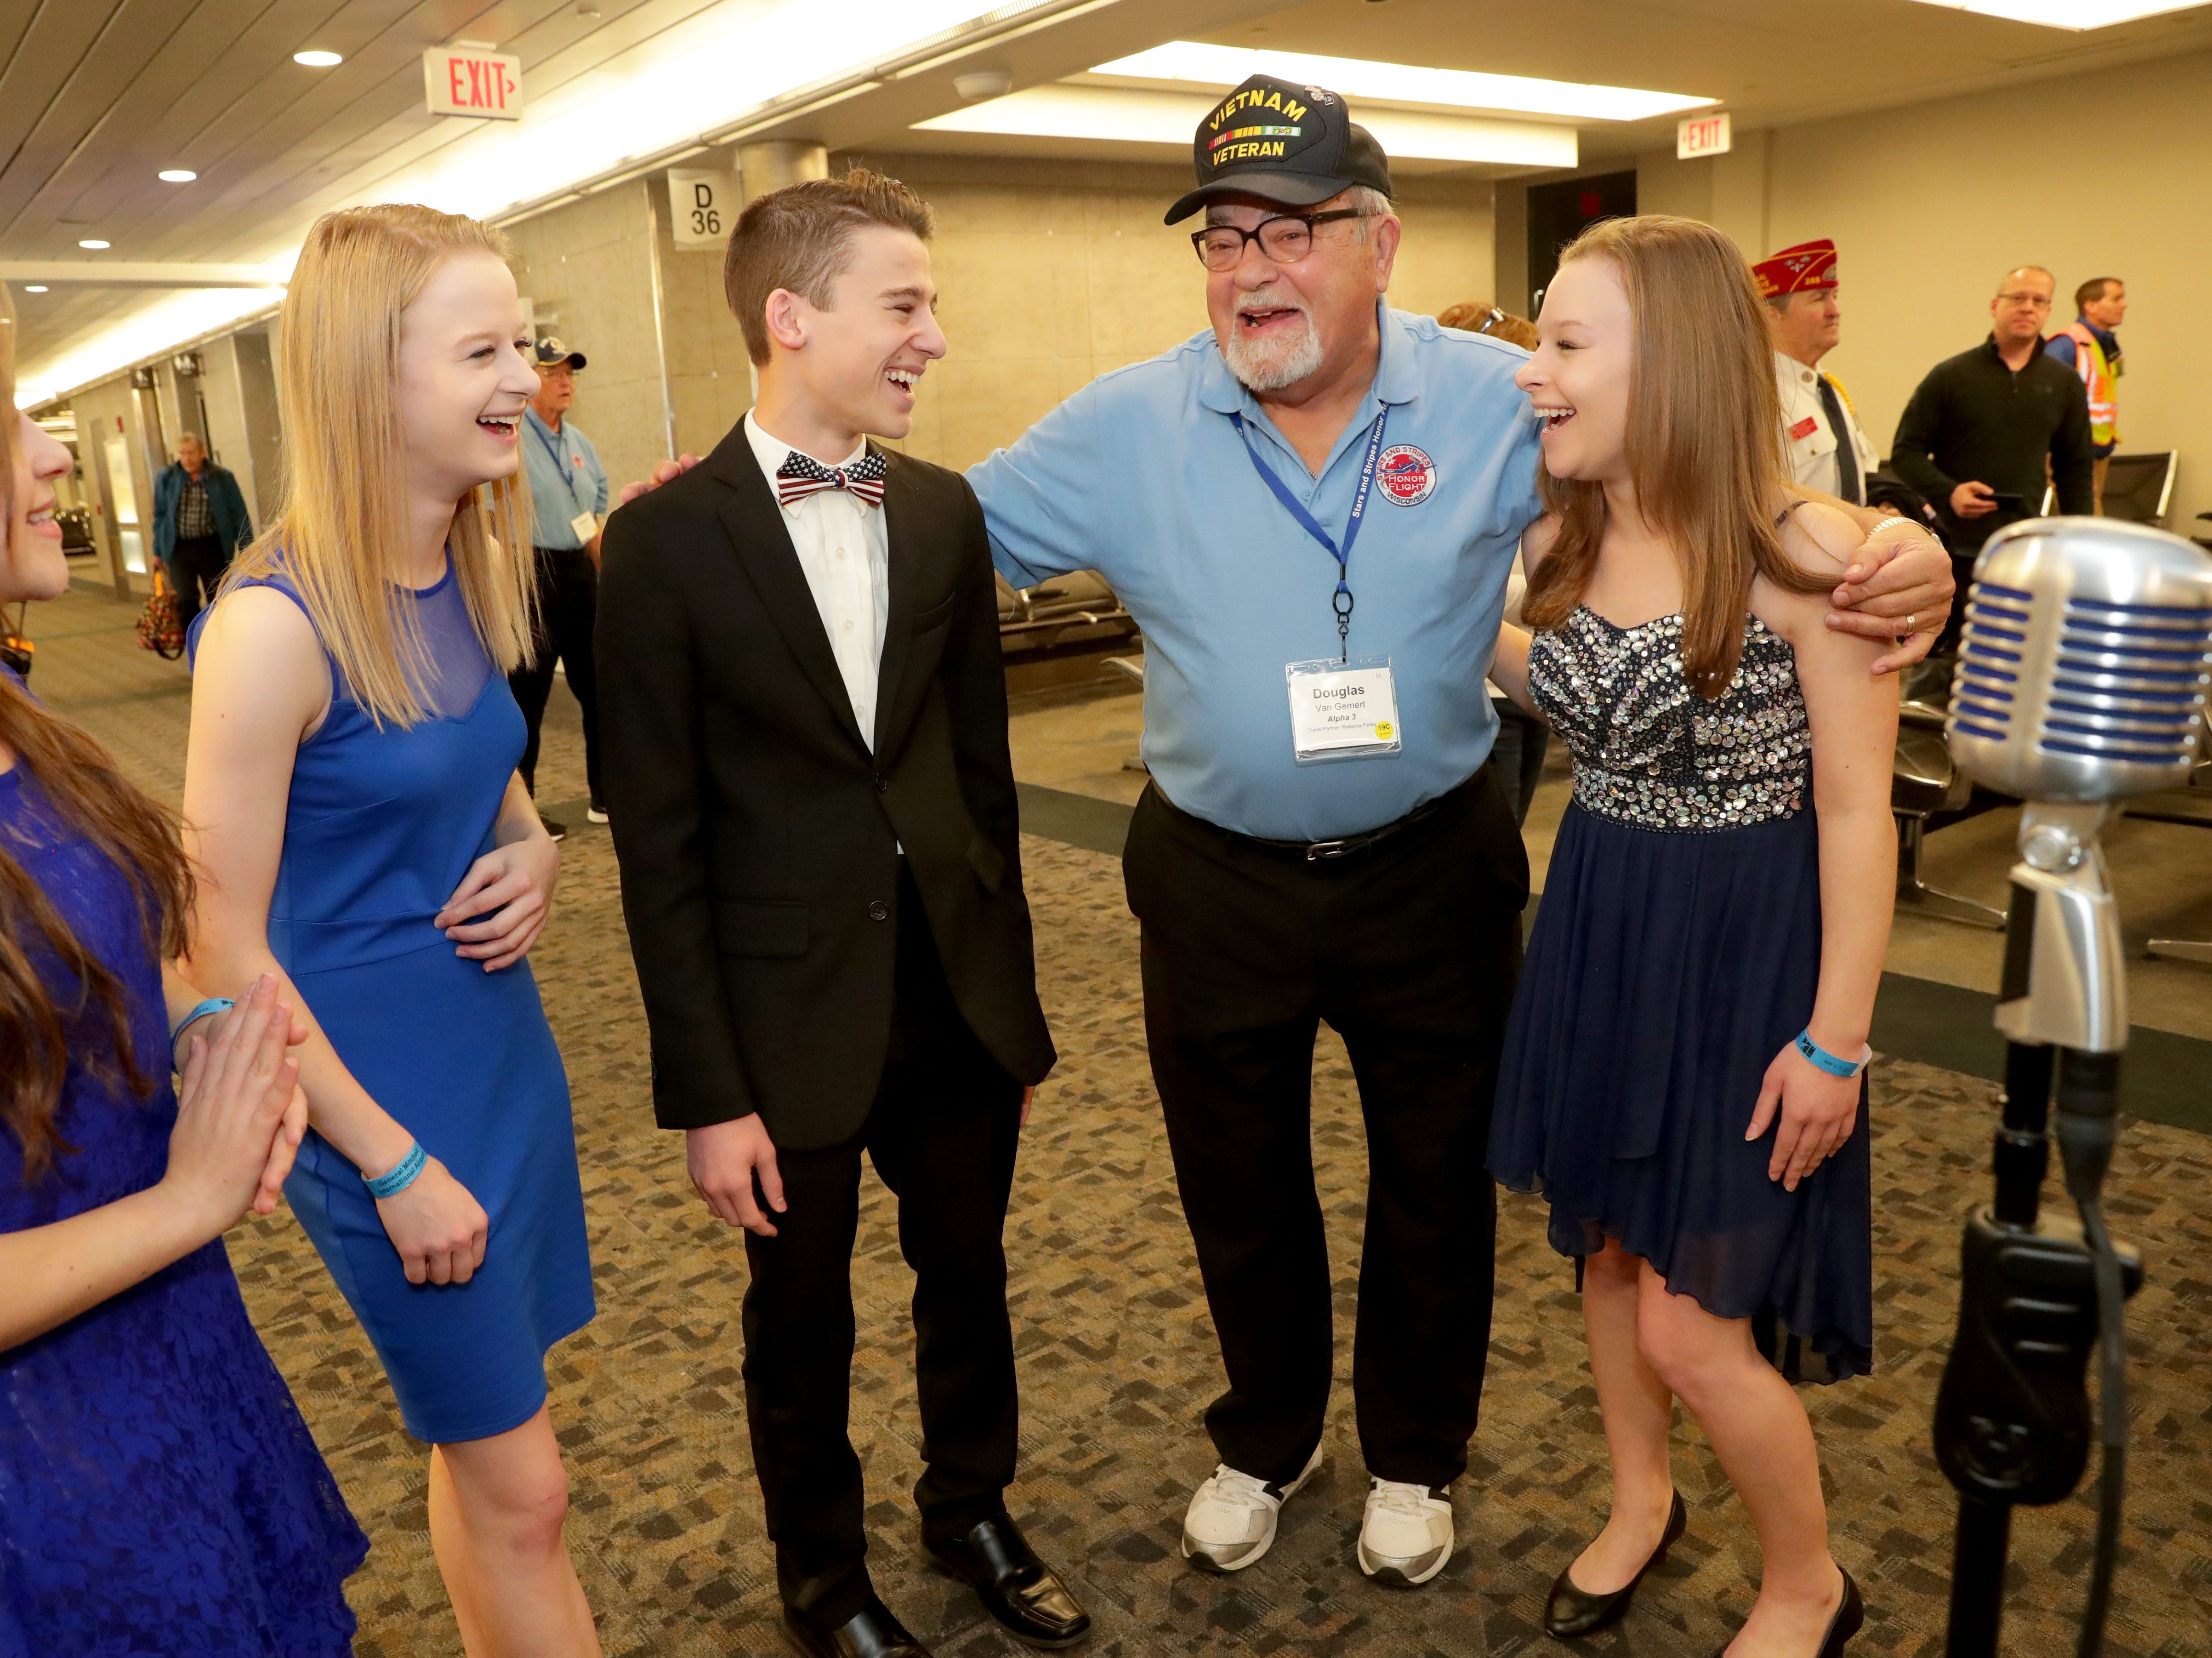 Vietnam veteran Douglas Van Gemert of Franklin poses for a photo with the quadruplet quartet singing group Vintage Mix, from Waukesha. The singers are  Julia Shoppach (from left), Anika Shoppach, Ian Shoppach and Kelsey Shoppach. The family has been performing for honor flight sendoffs since 2014.